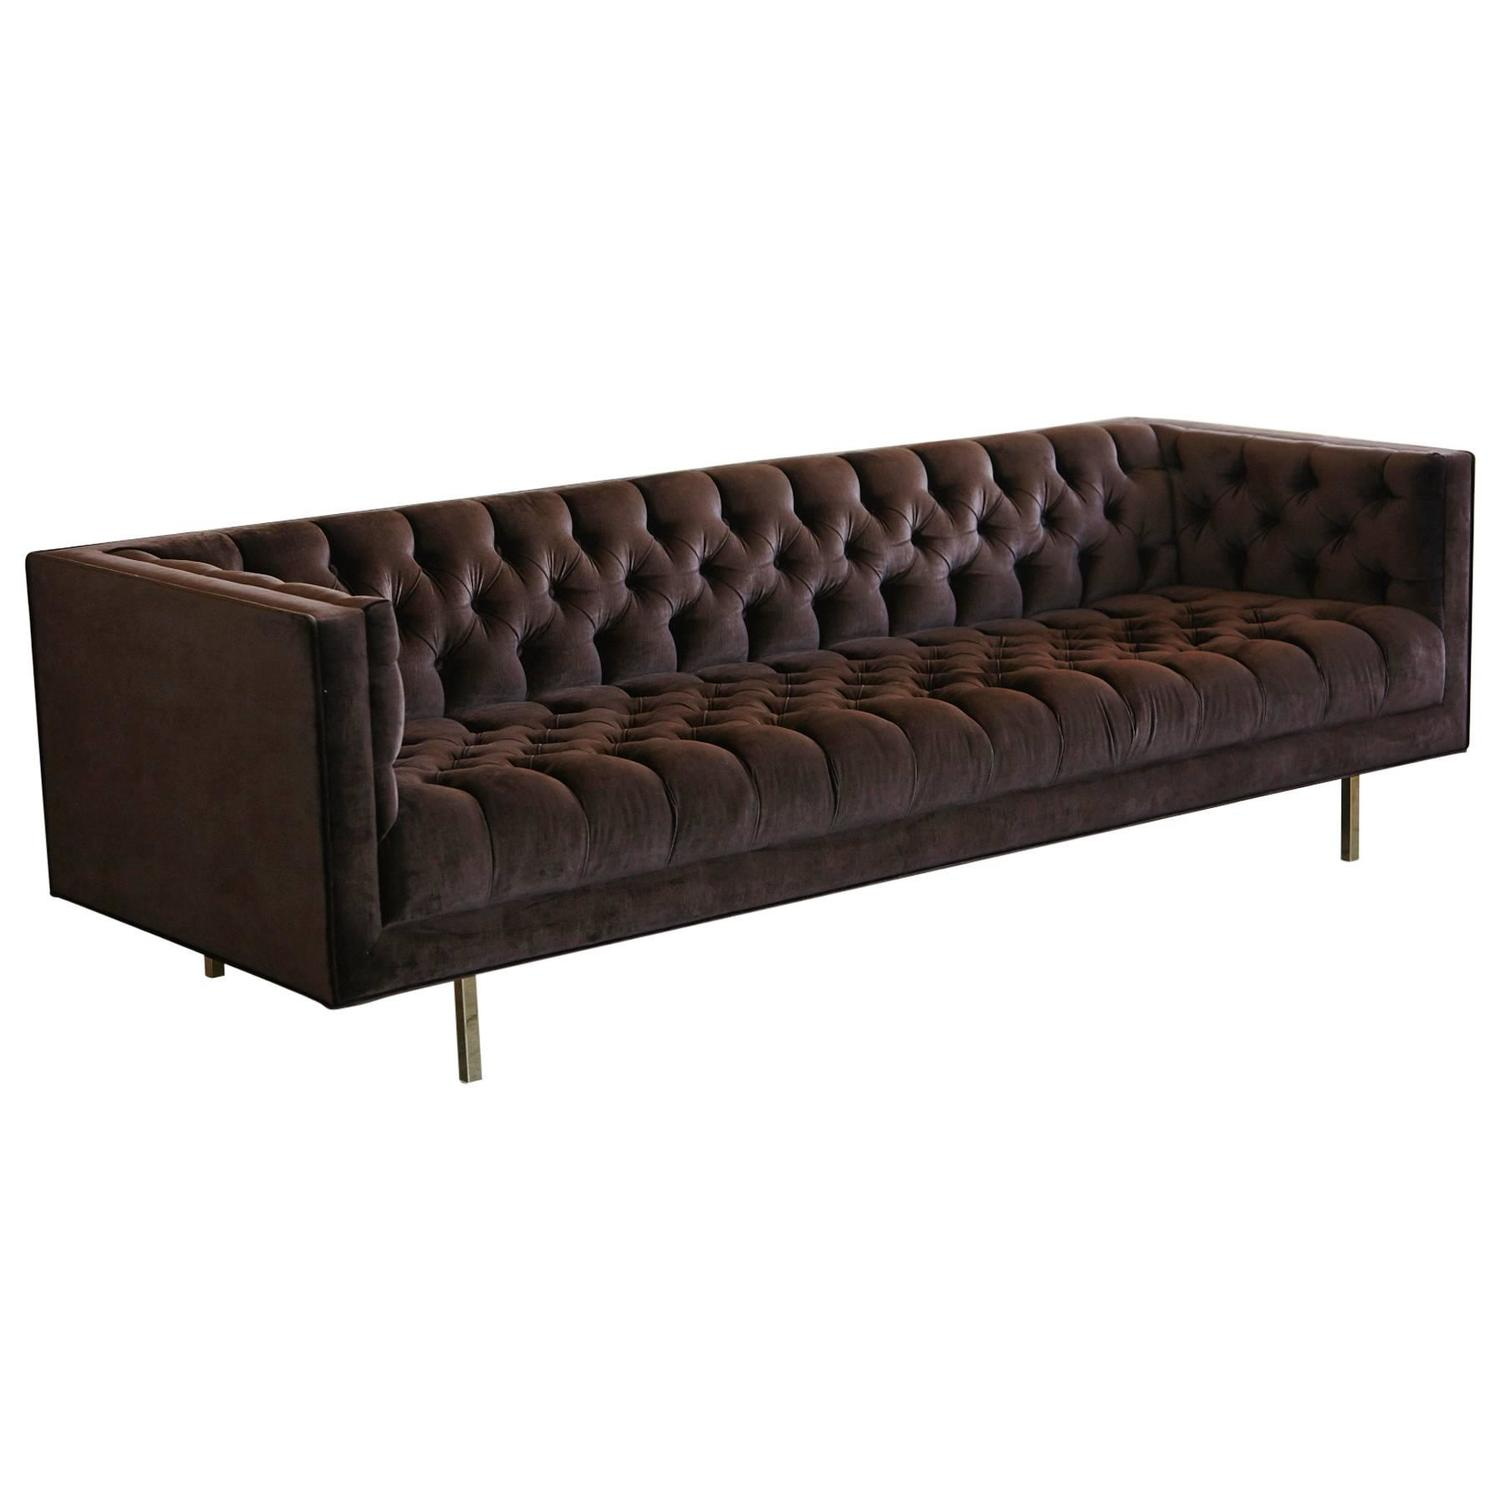 Modern Deeply Button Tufted Velvet Tuxedo Sofa in Chocolate Brown